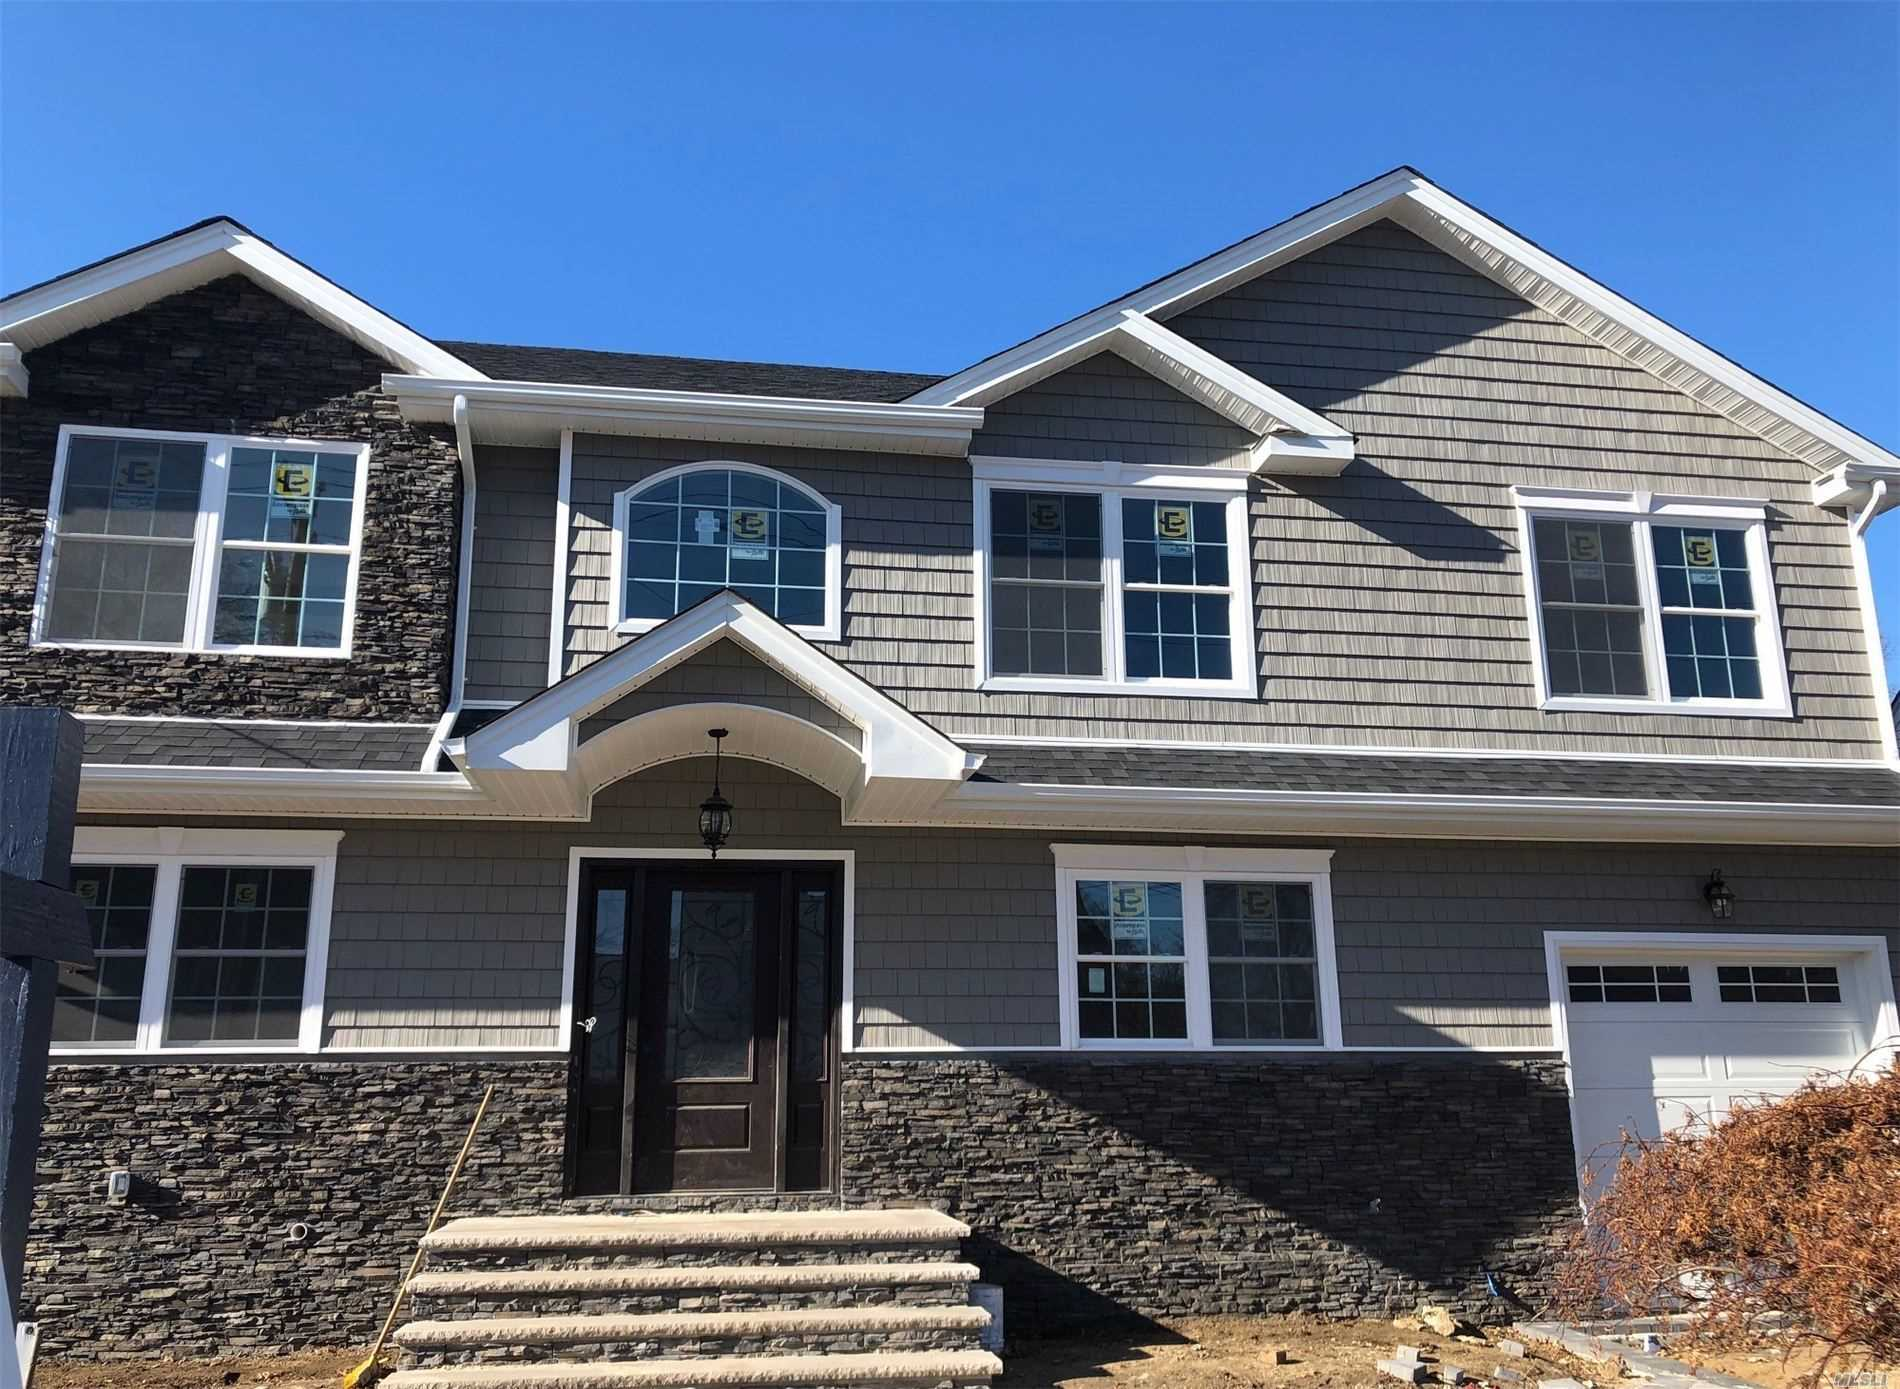 Beautiful New Colonial boasts 5 bedrooms, 3.5 Baths, Living Room, Formal Dining Room, Den , Laundry Room, Full Finished Basement, Cac .